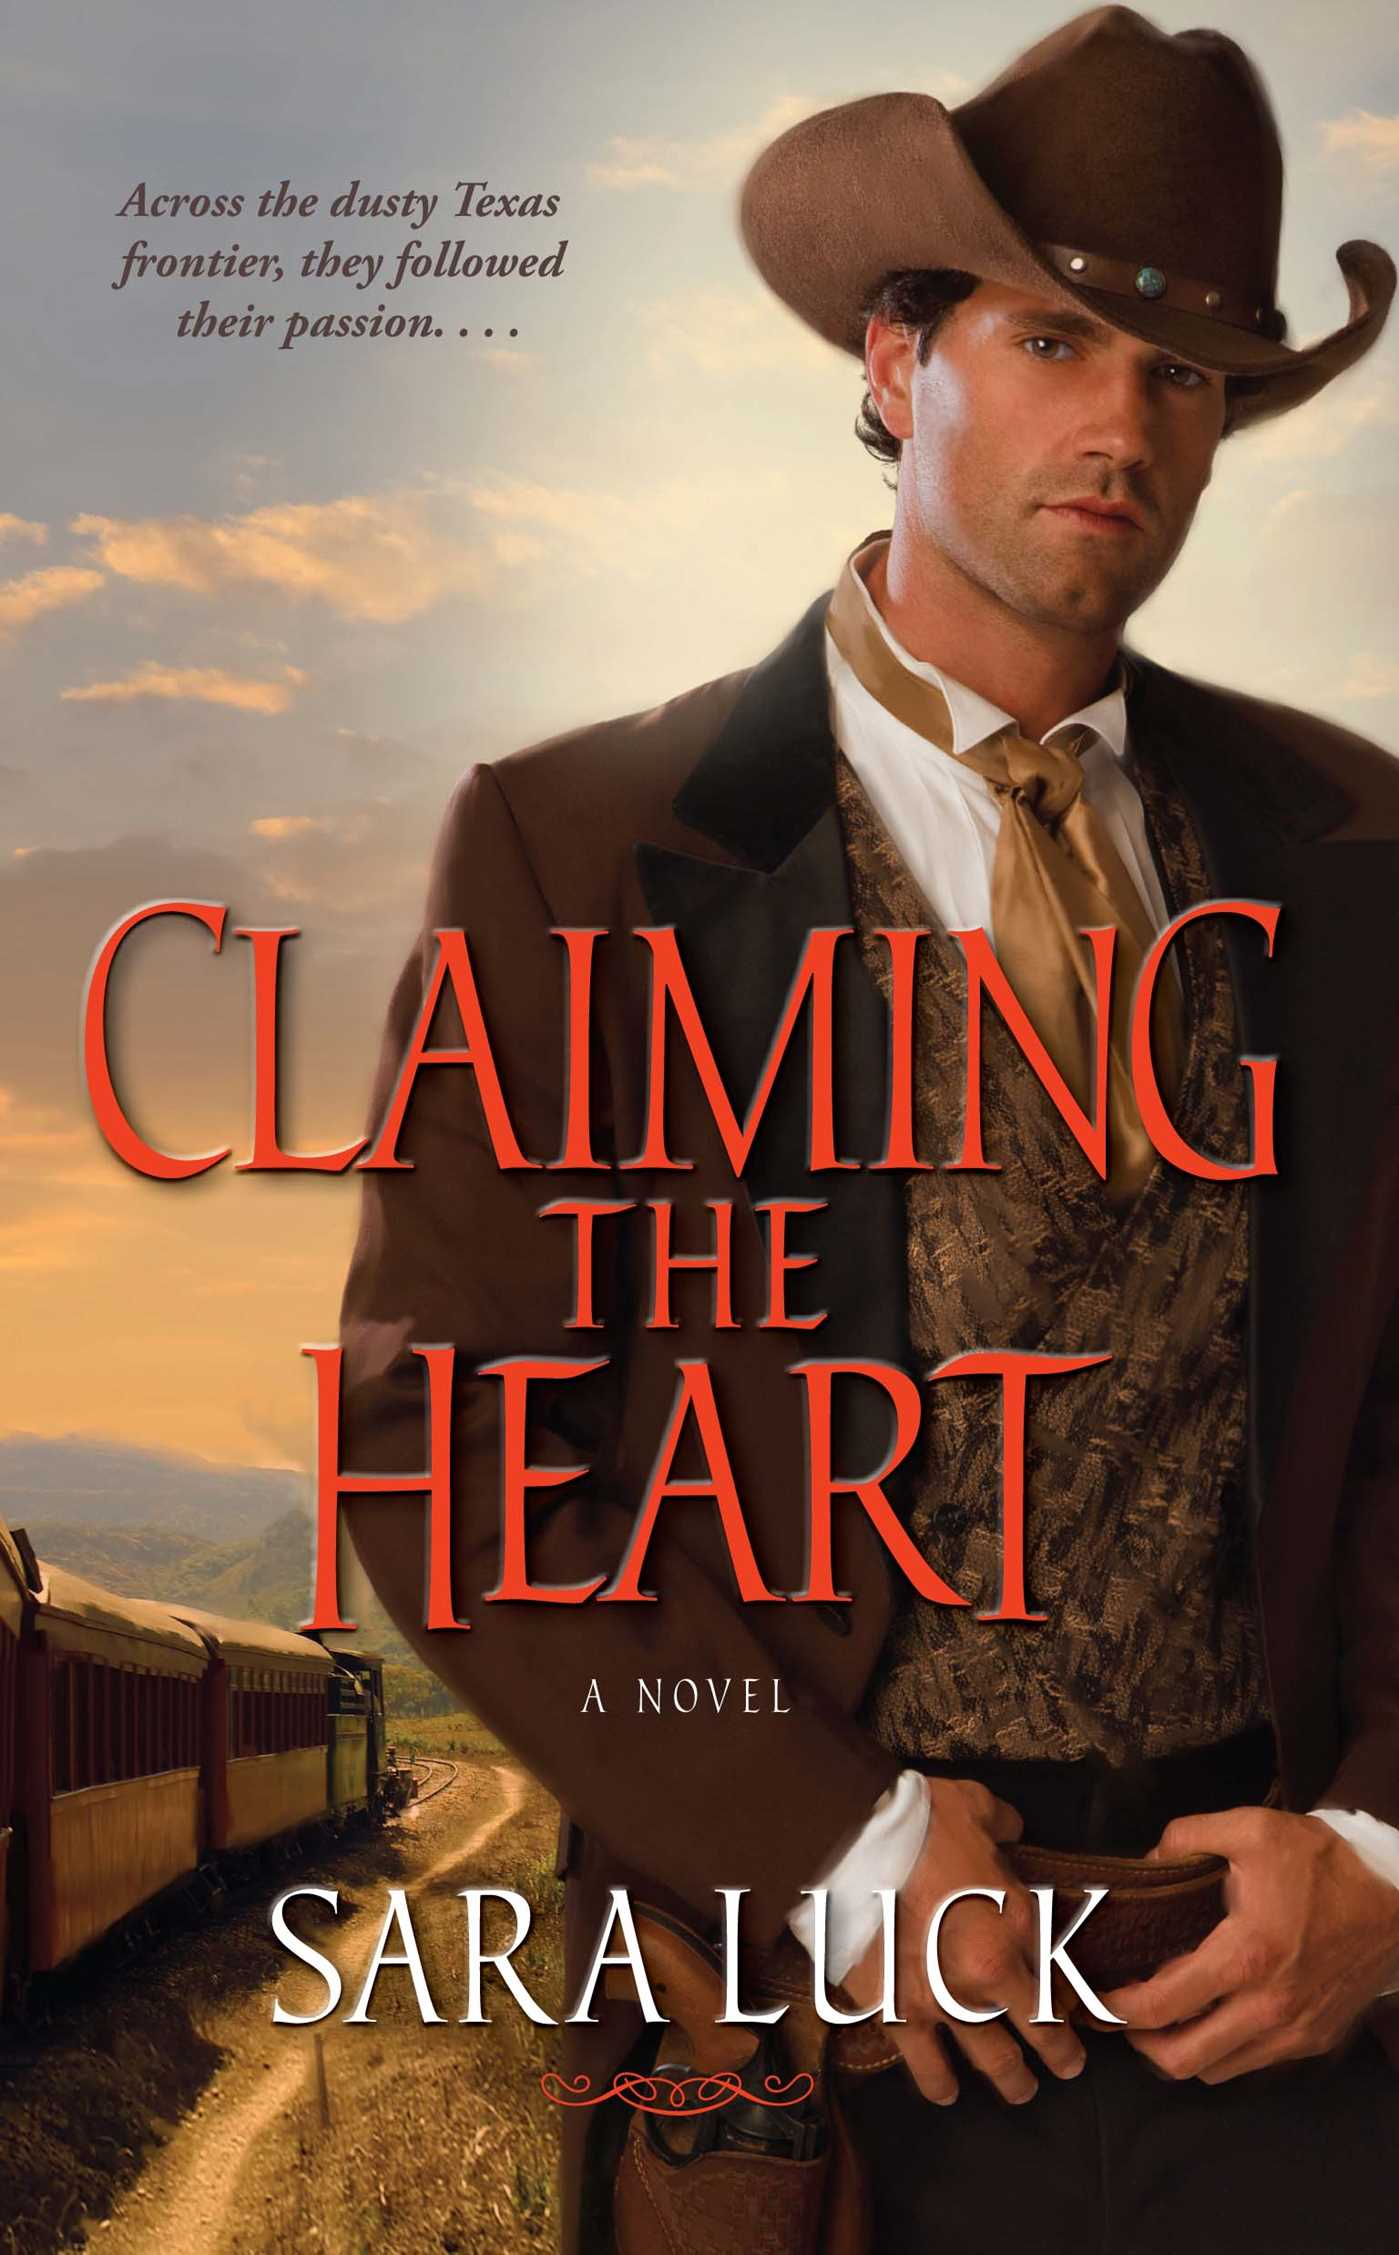 Claiming-the-heart-9781451652253_hr